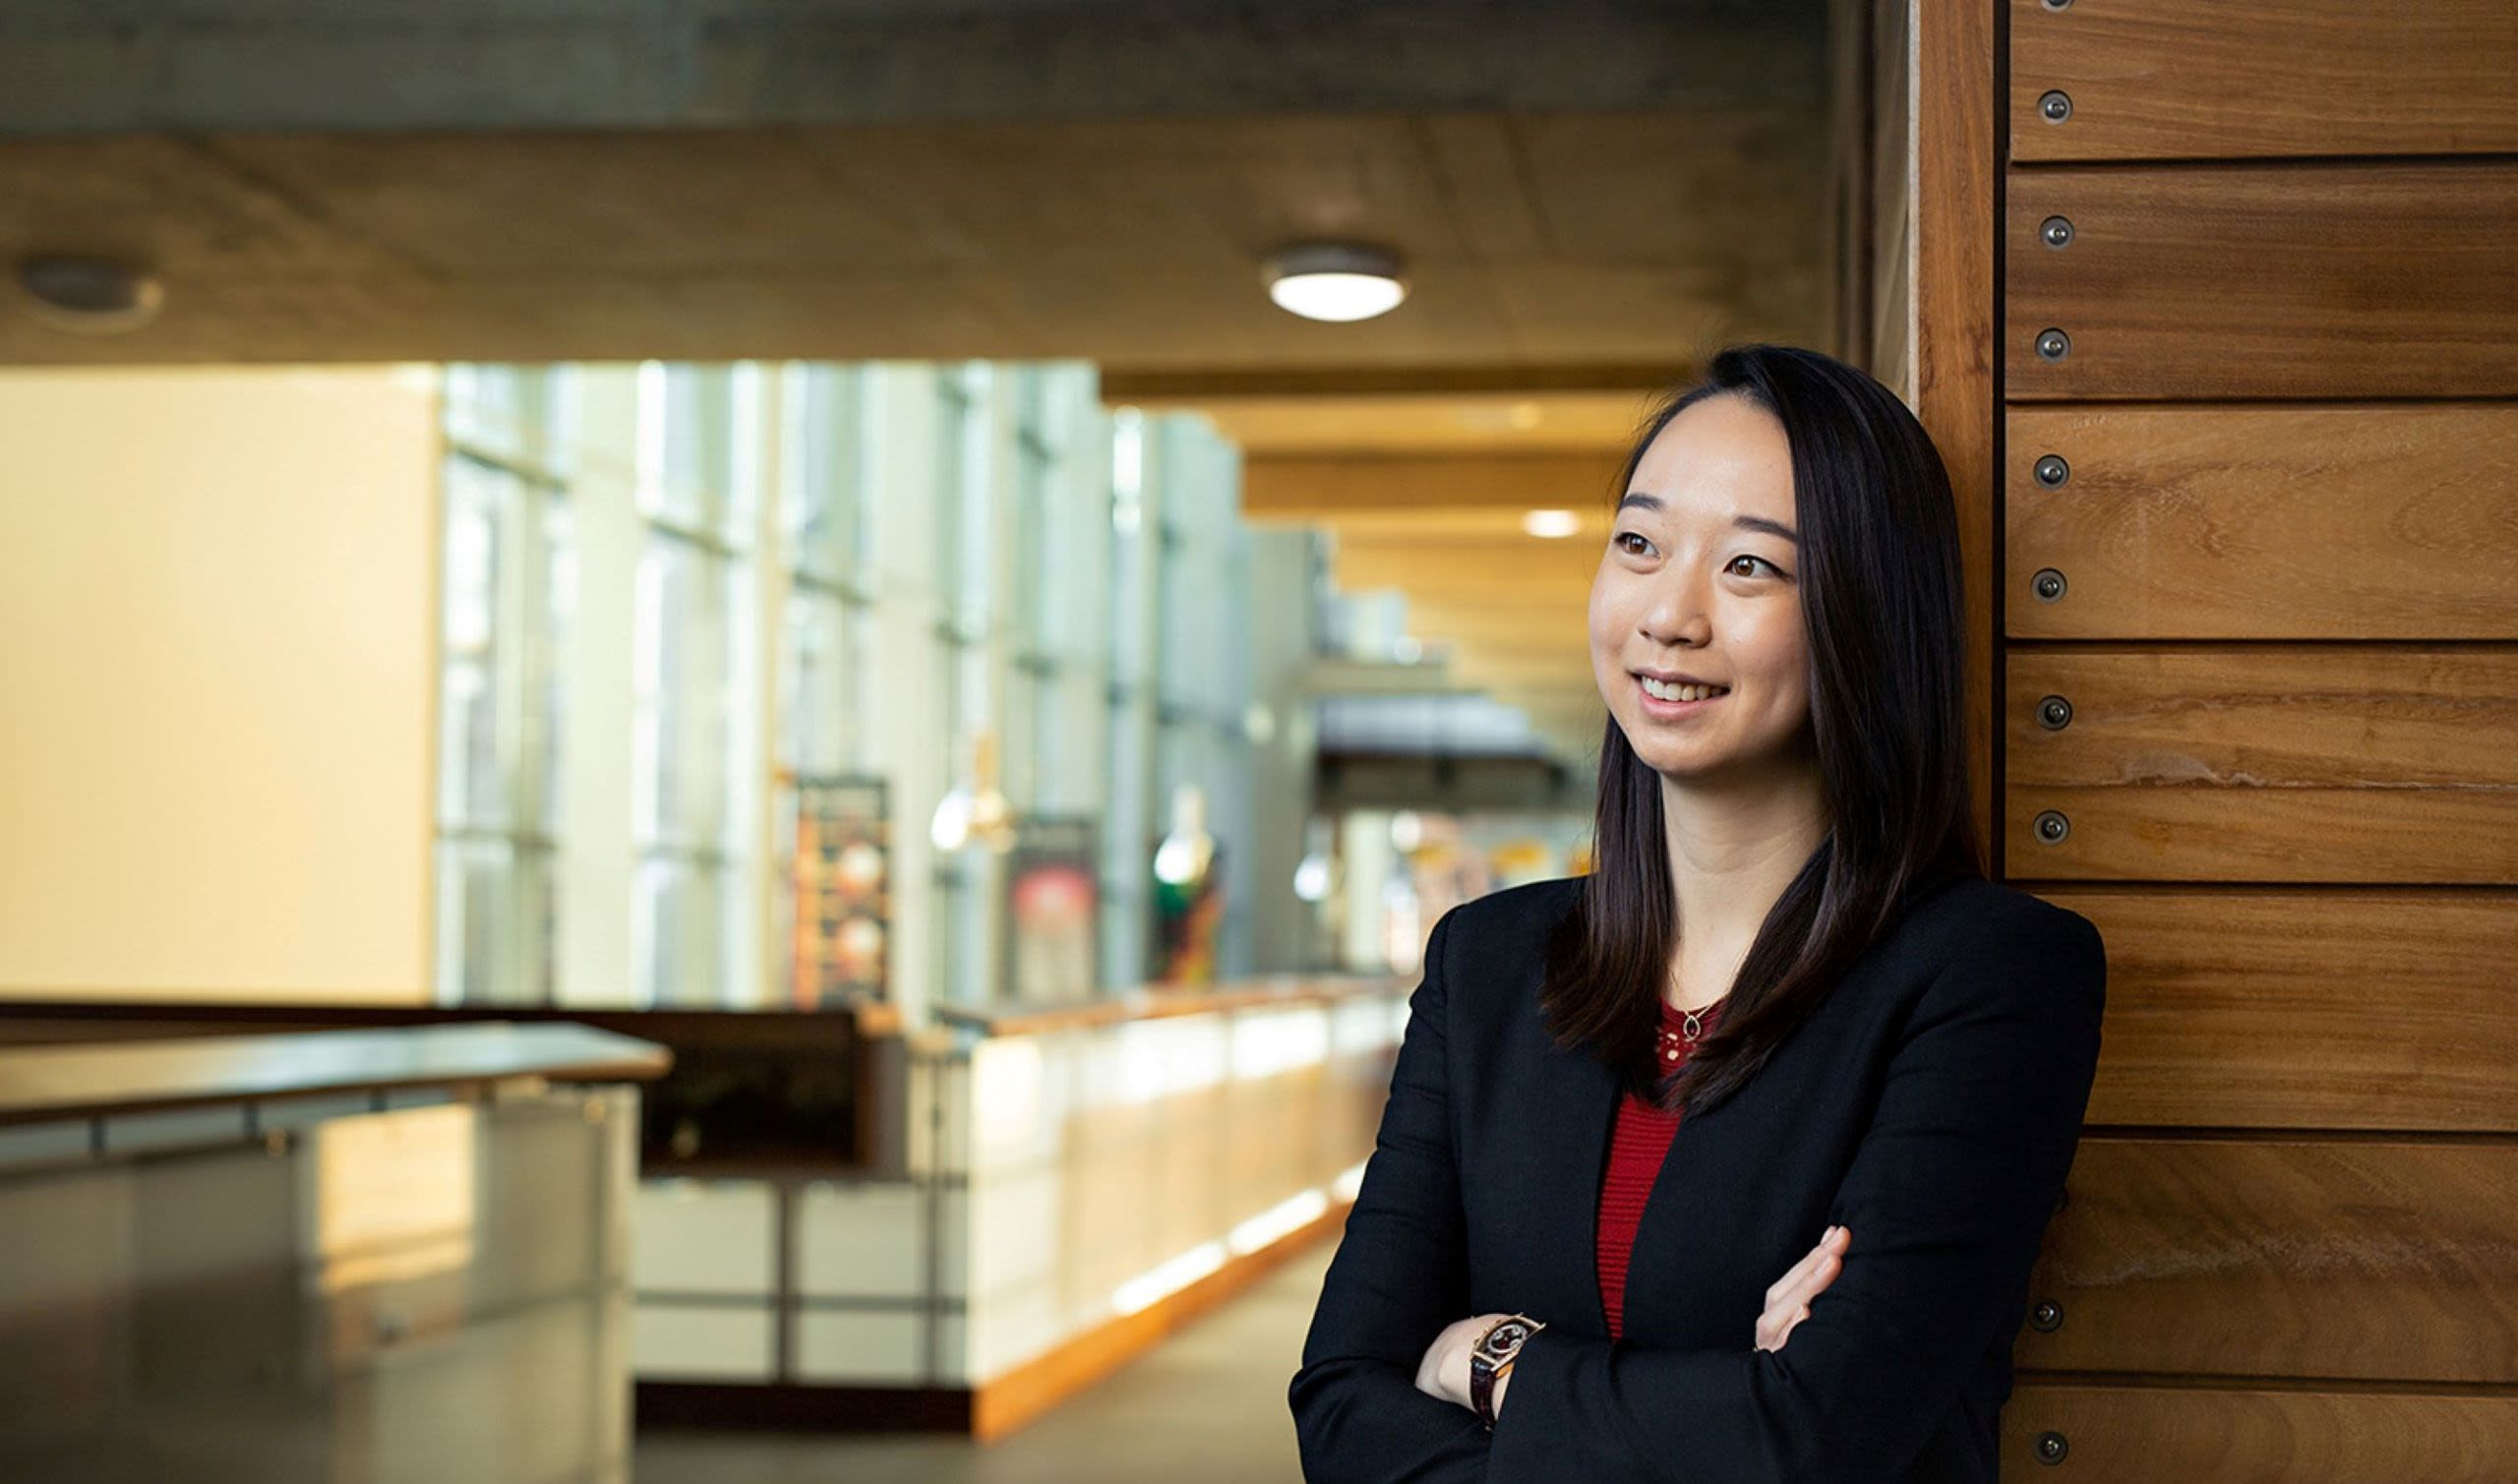 PhD student Michelle Seng Ah Lee pictured in the University of Cambridge Department of Computer Science and Technology